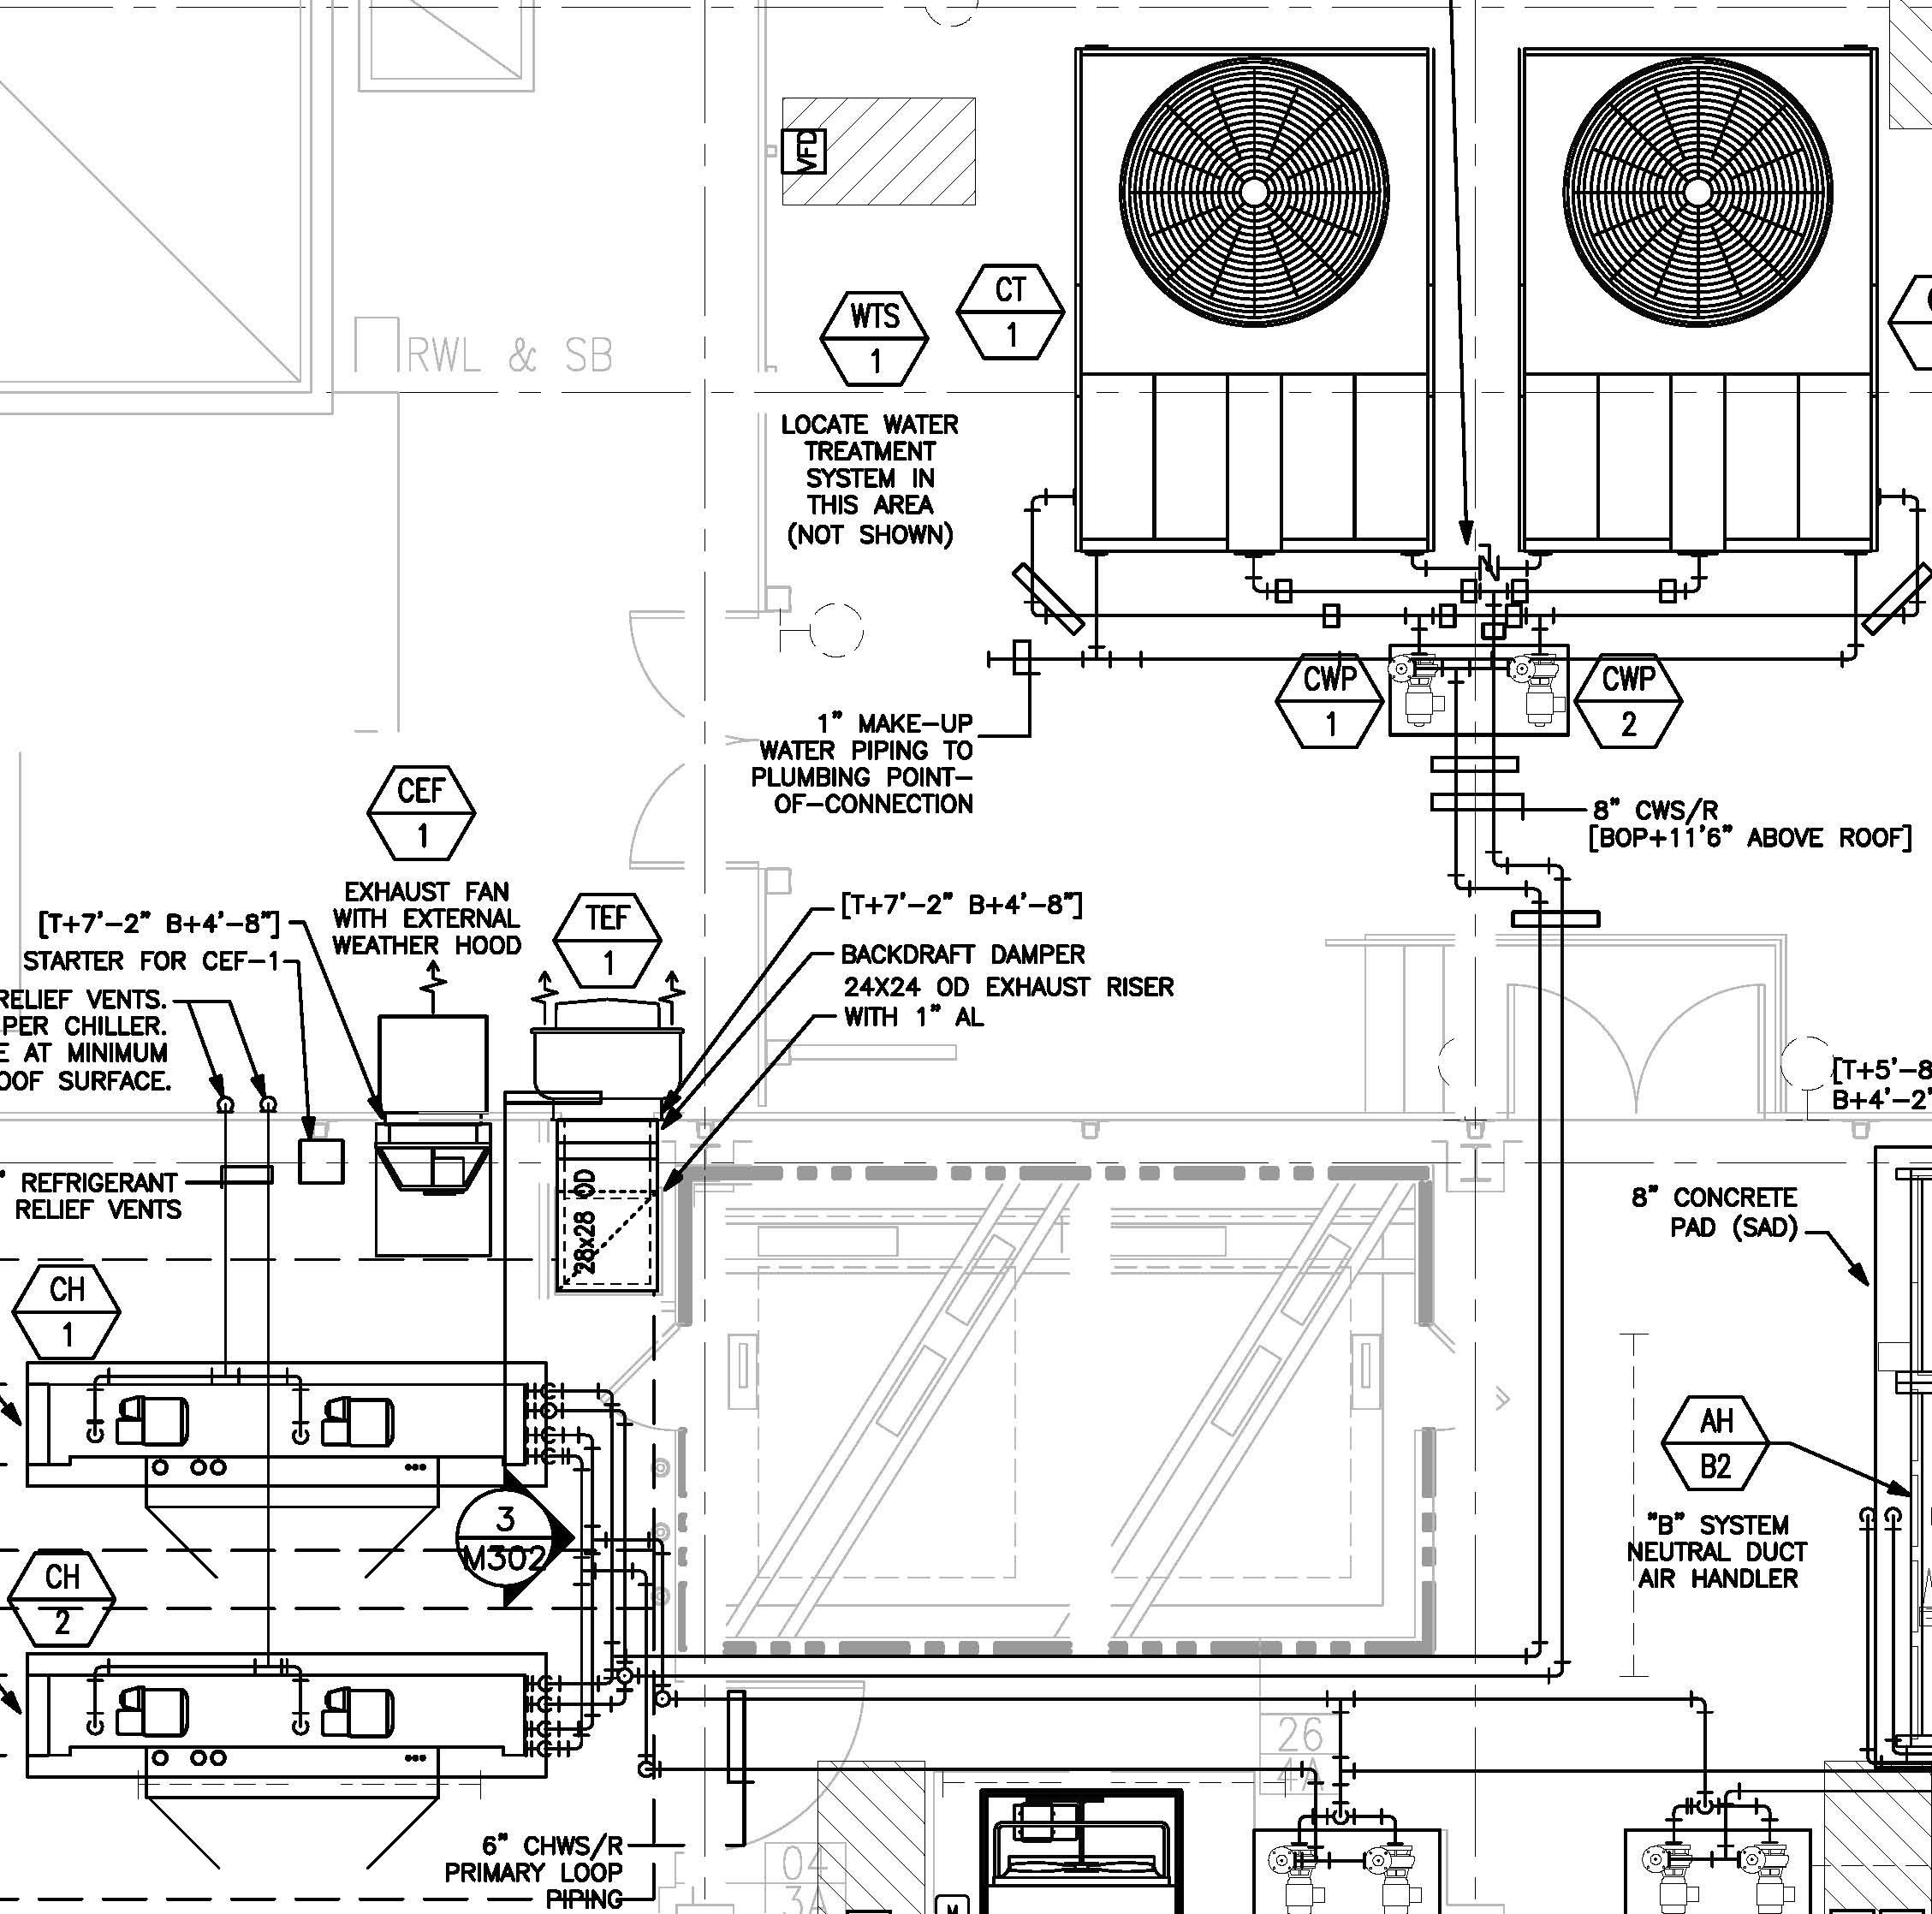 rheem rhllhm3617ja wiring diagram cell membrane rhll auto electrical diagrami need a complete for ruud air handler model hm3821ja